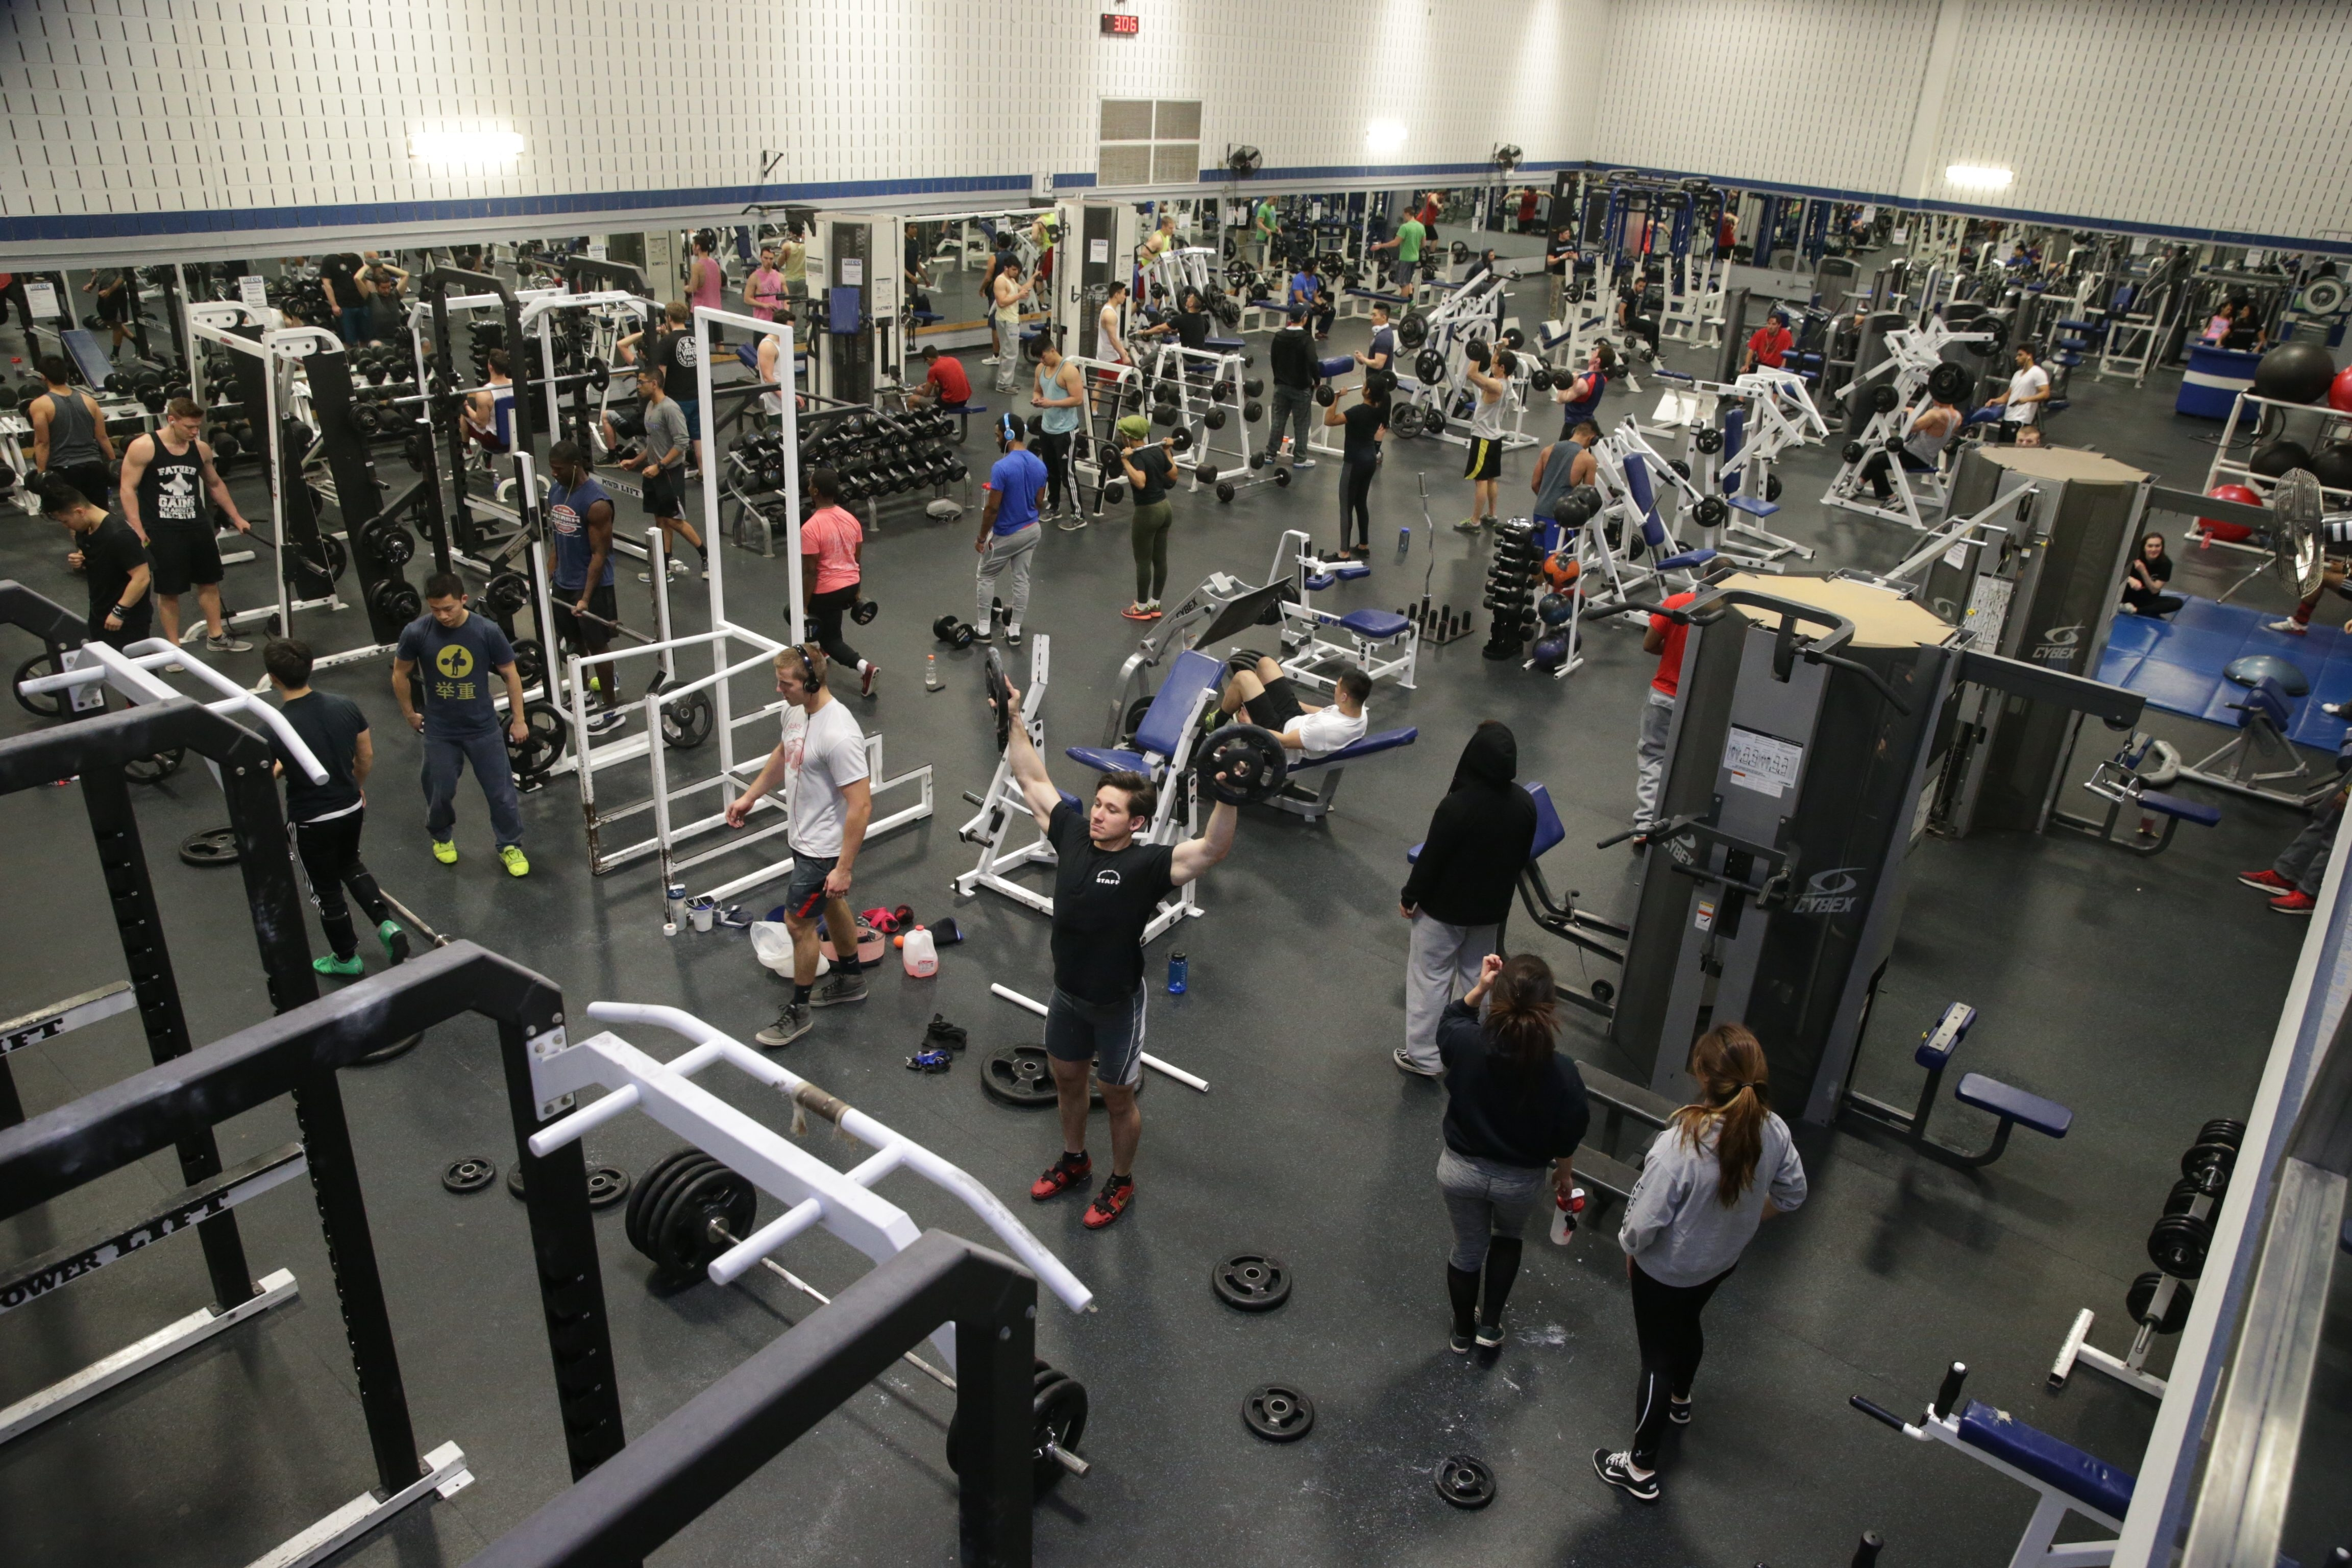 UB students and members of the community use the Alumni Arena Fitness Center in Amherst. UB officials acknowledge the need for improved and additional recreational space on both the North and South campuses. (John Hickey/Buffalo News)